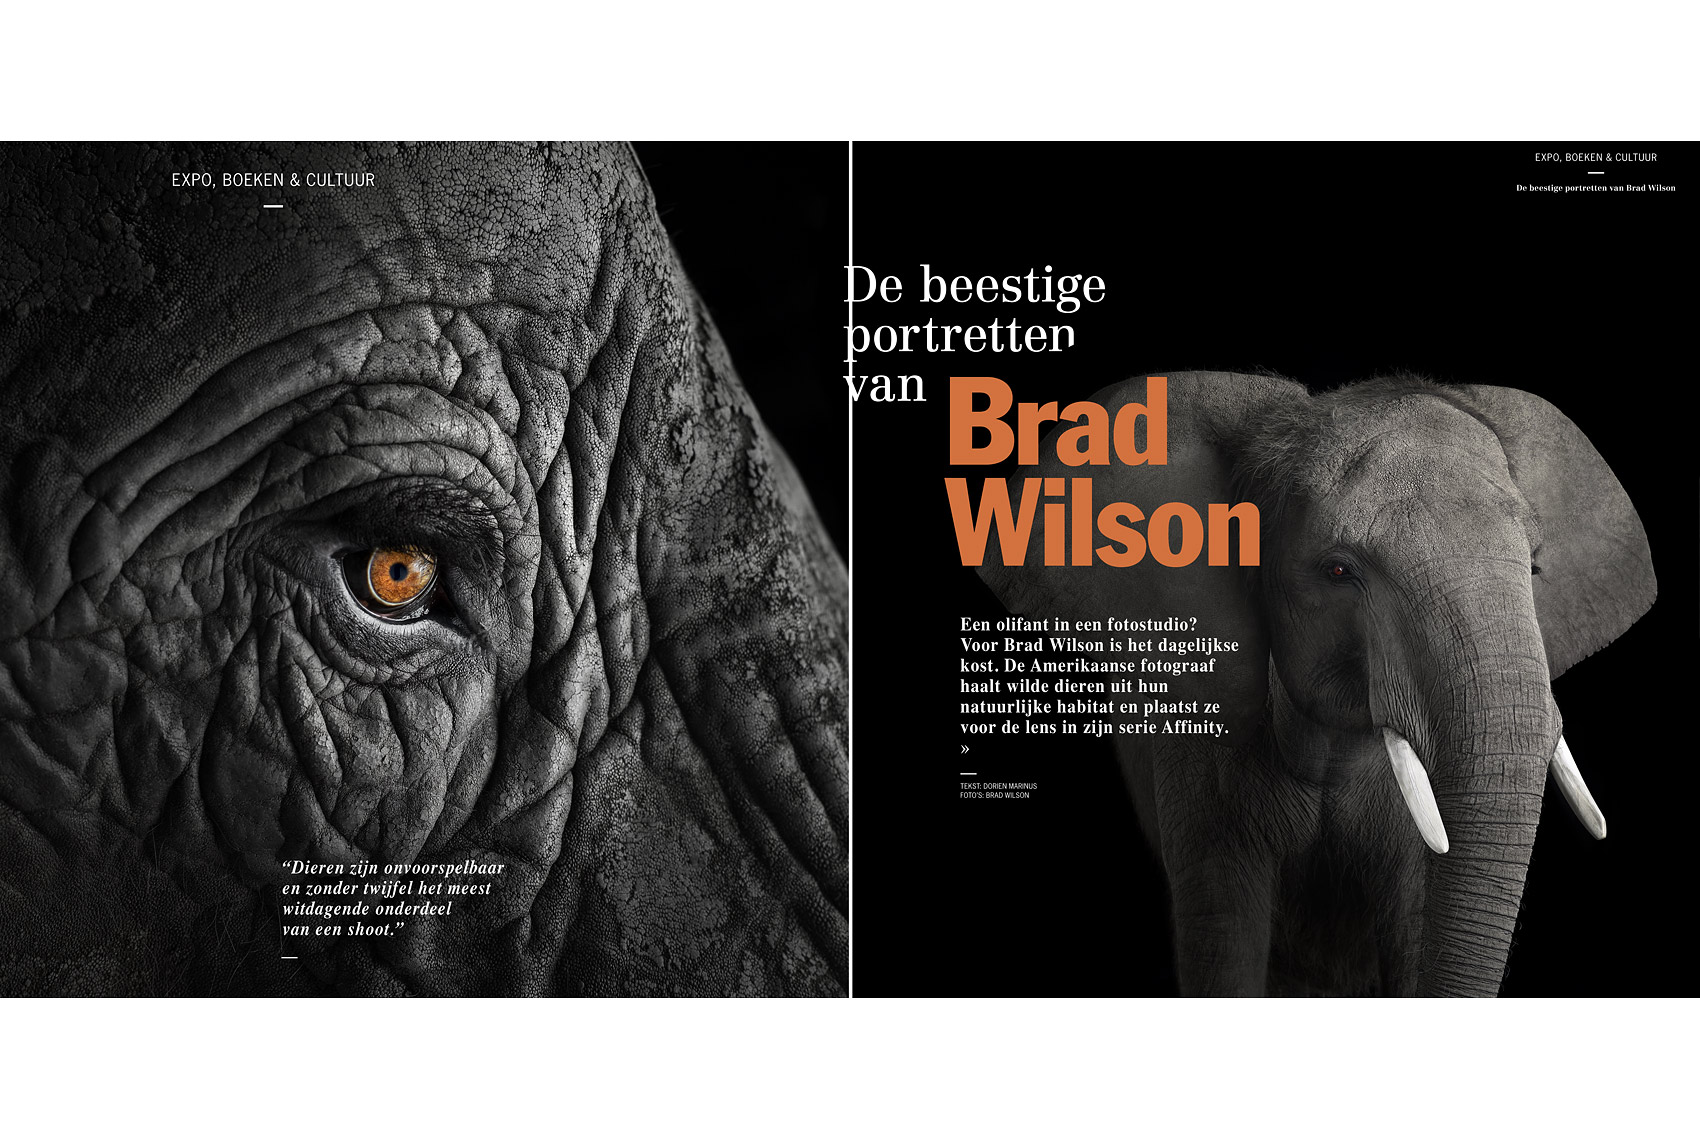 Porsche Magazine article about wildlife photographer Brad Wilson